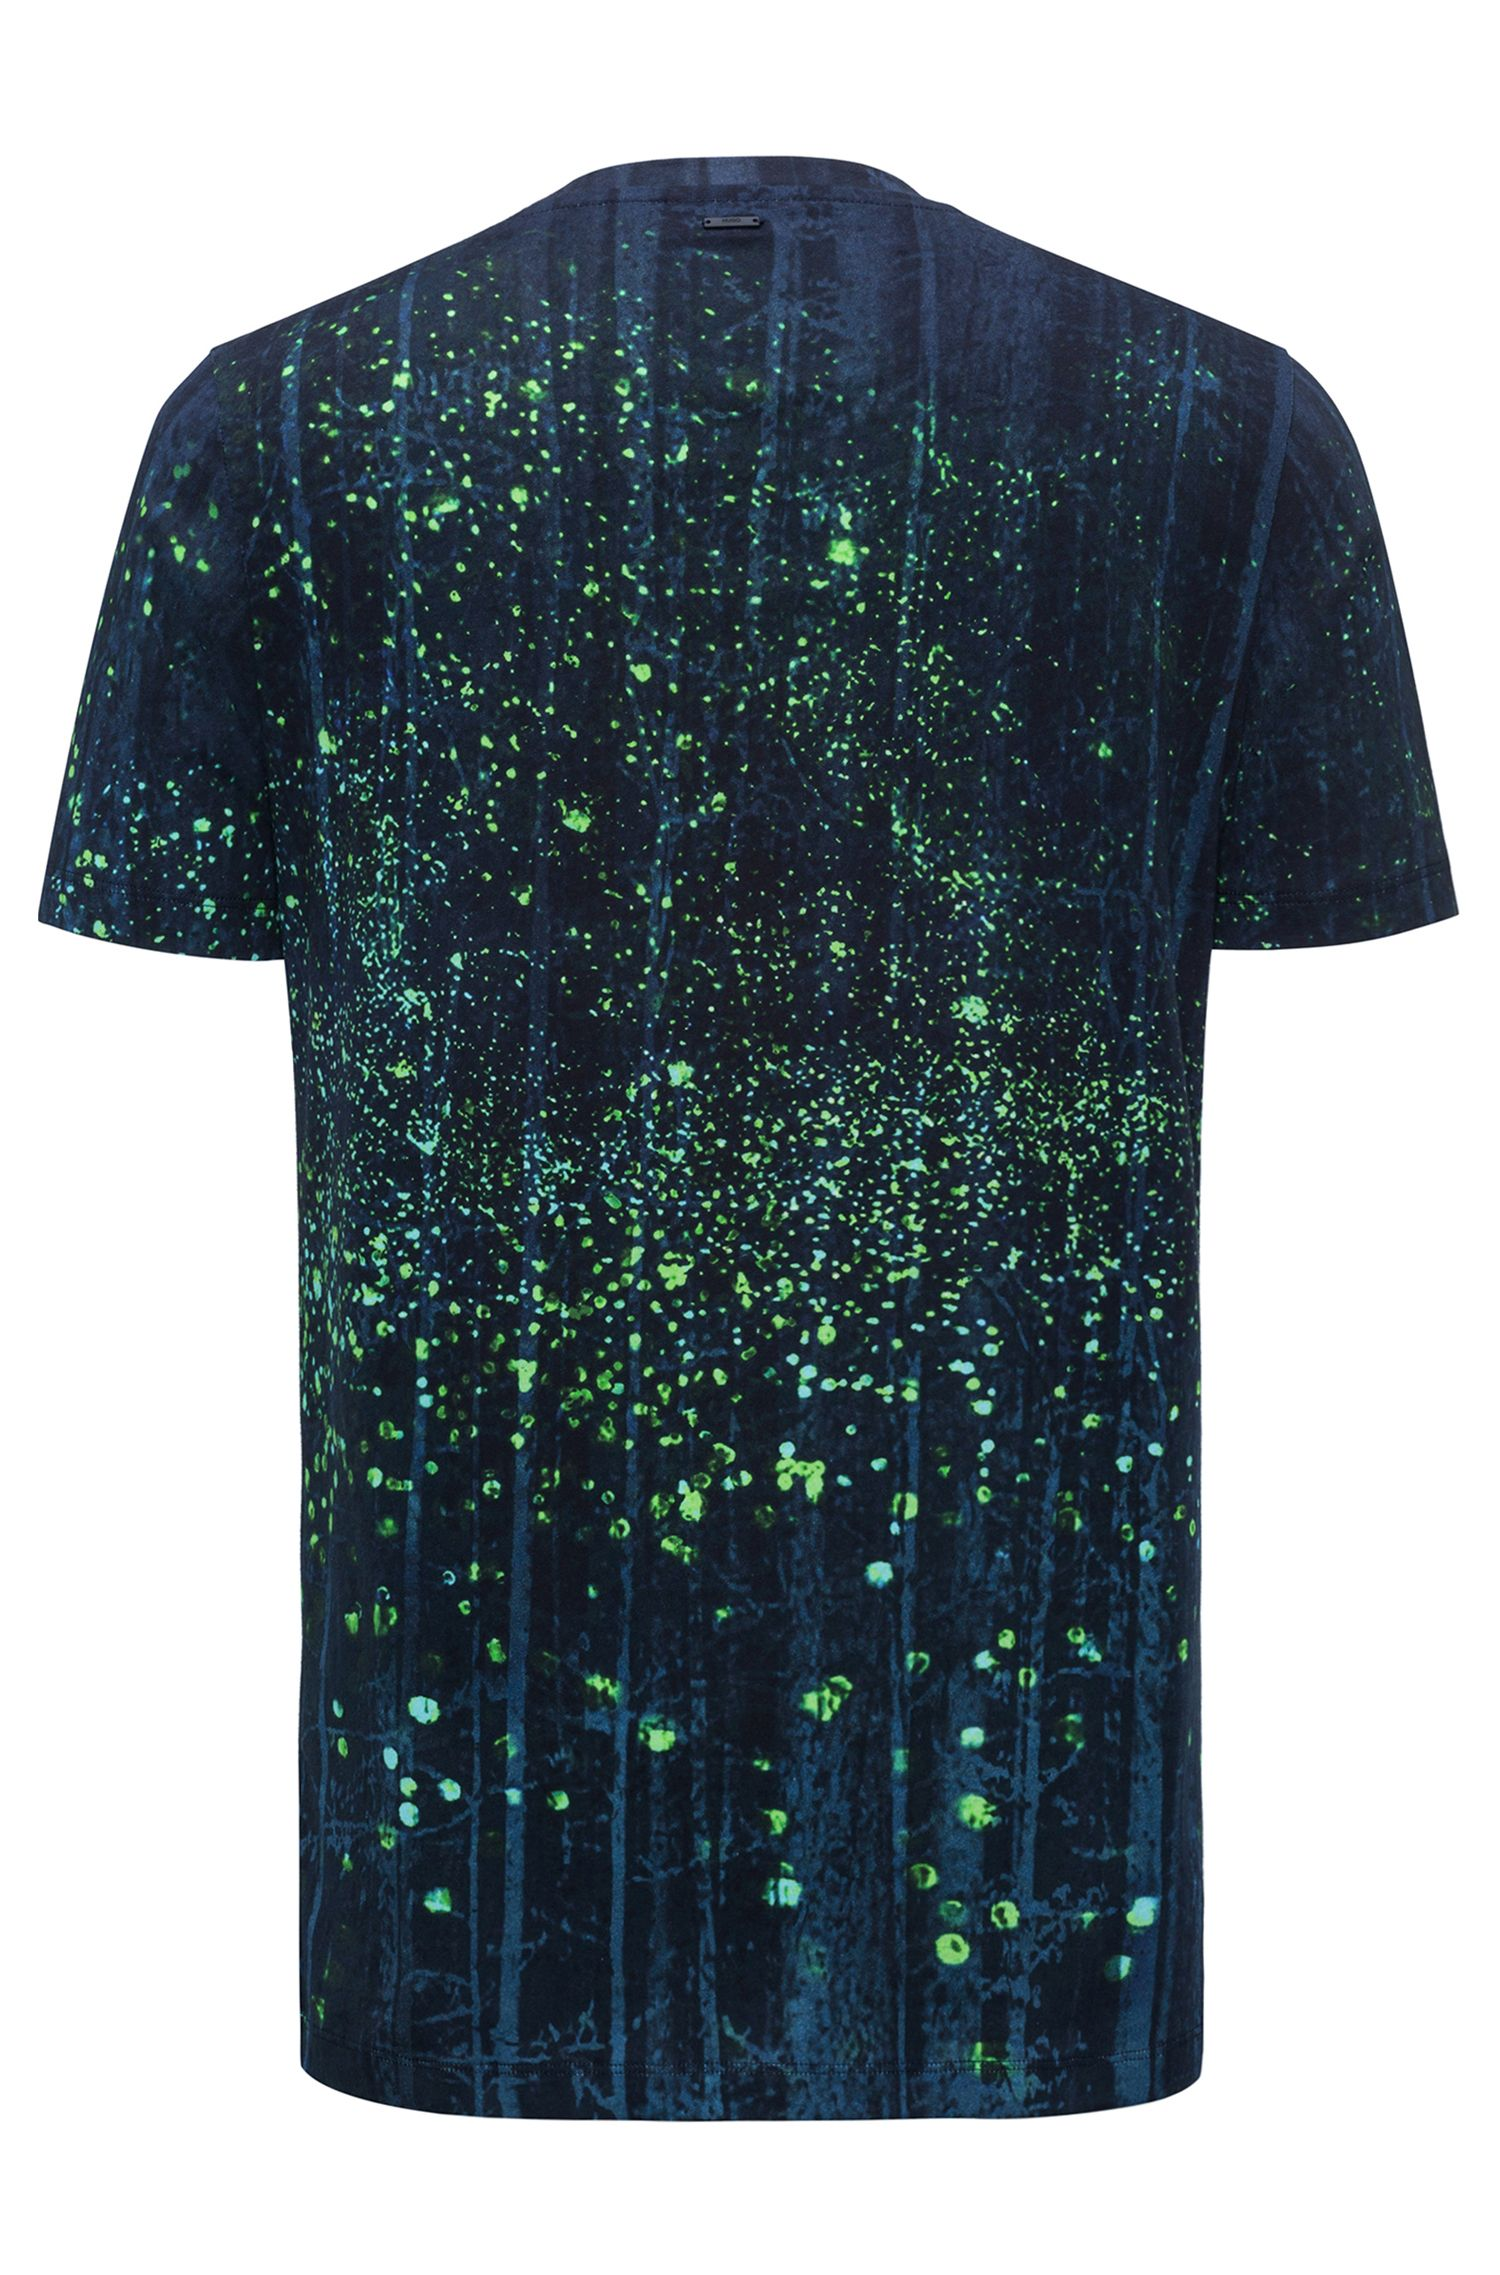 Relaxed-fit cotton T-shirt with firefly artwork